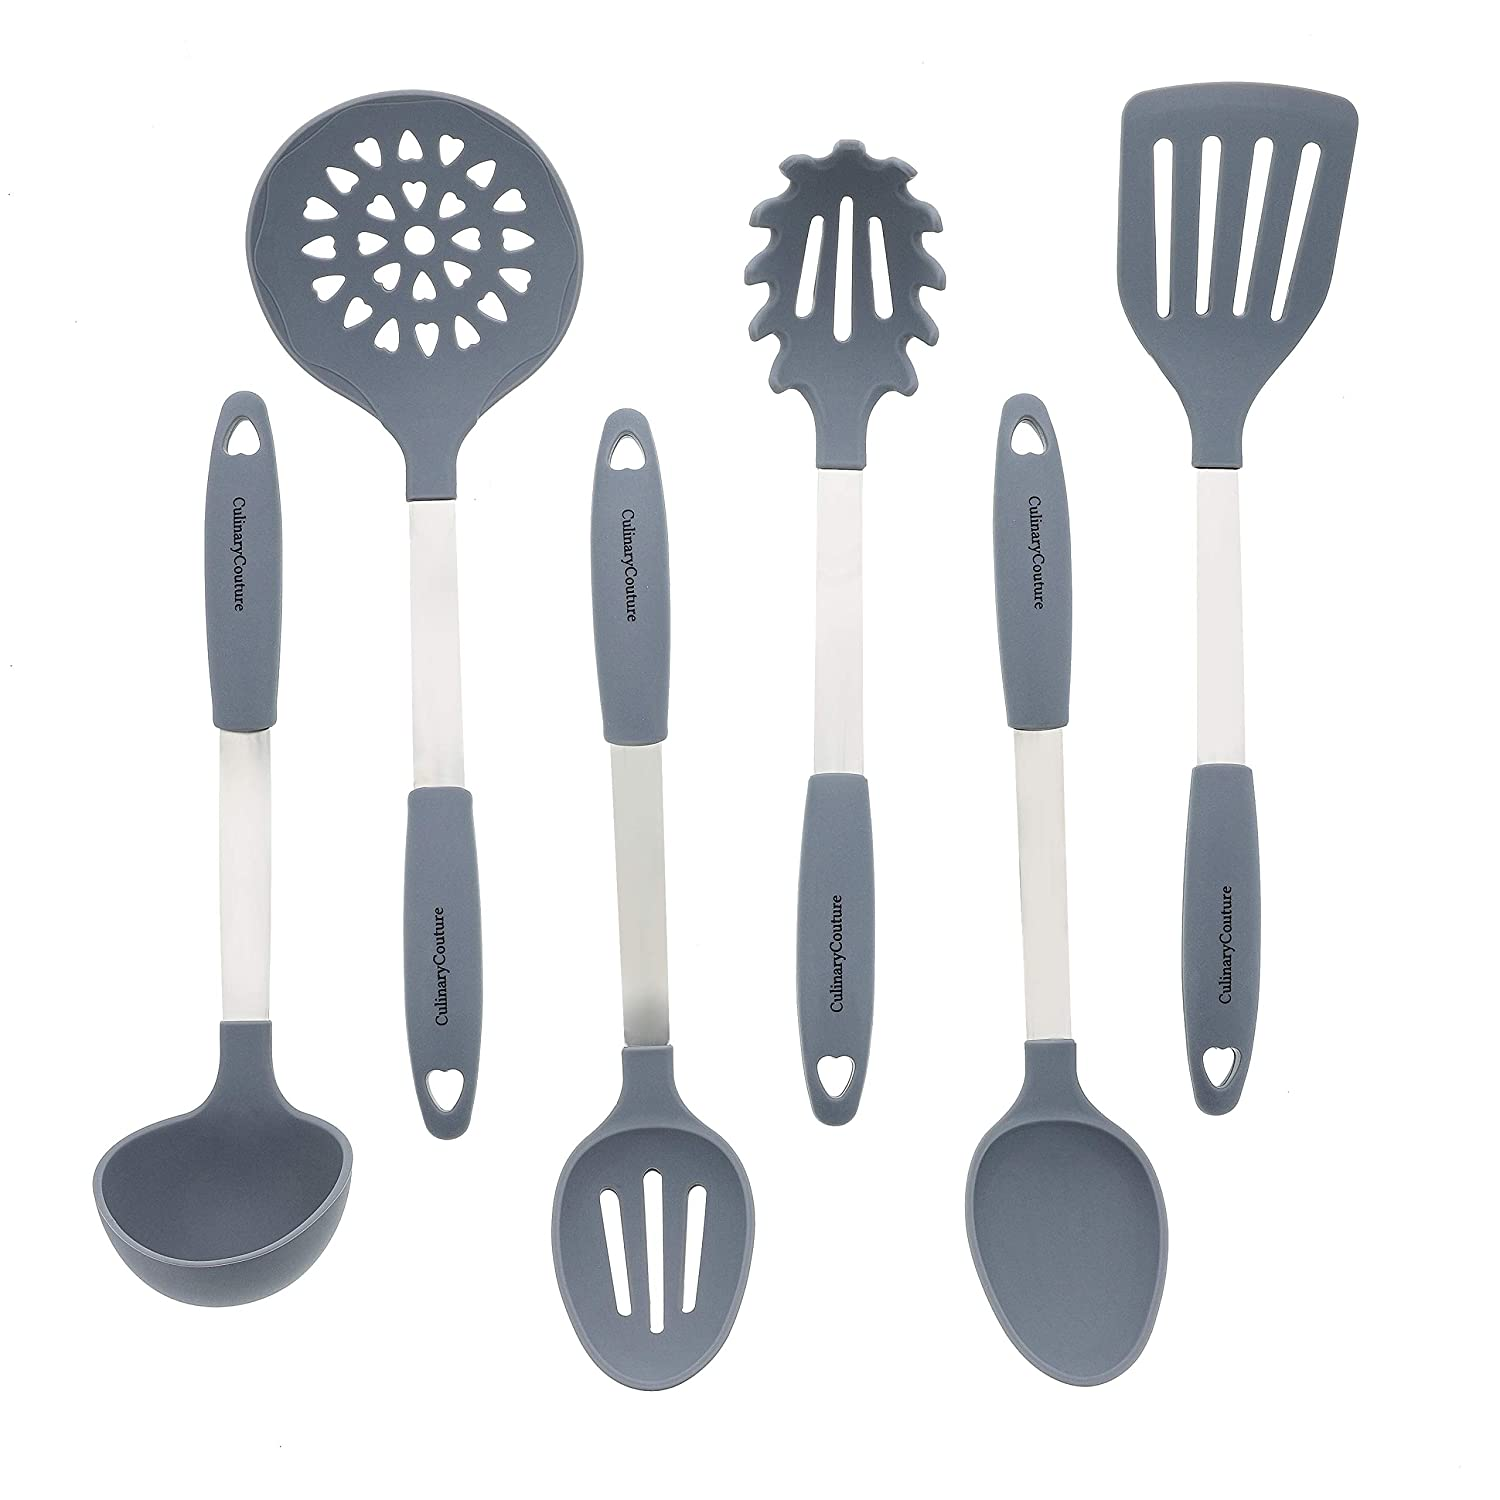 Grey Kitchen Utensil Set - Stainless Steel & Silicone Heat Resistant Cooking Tools - Spatula, Ladle, Mixing & Slotted Spoon, Pasta Fork Server, Drainer - Bonus Ebook!